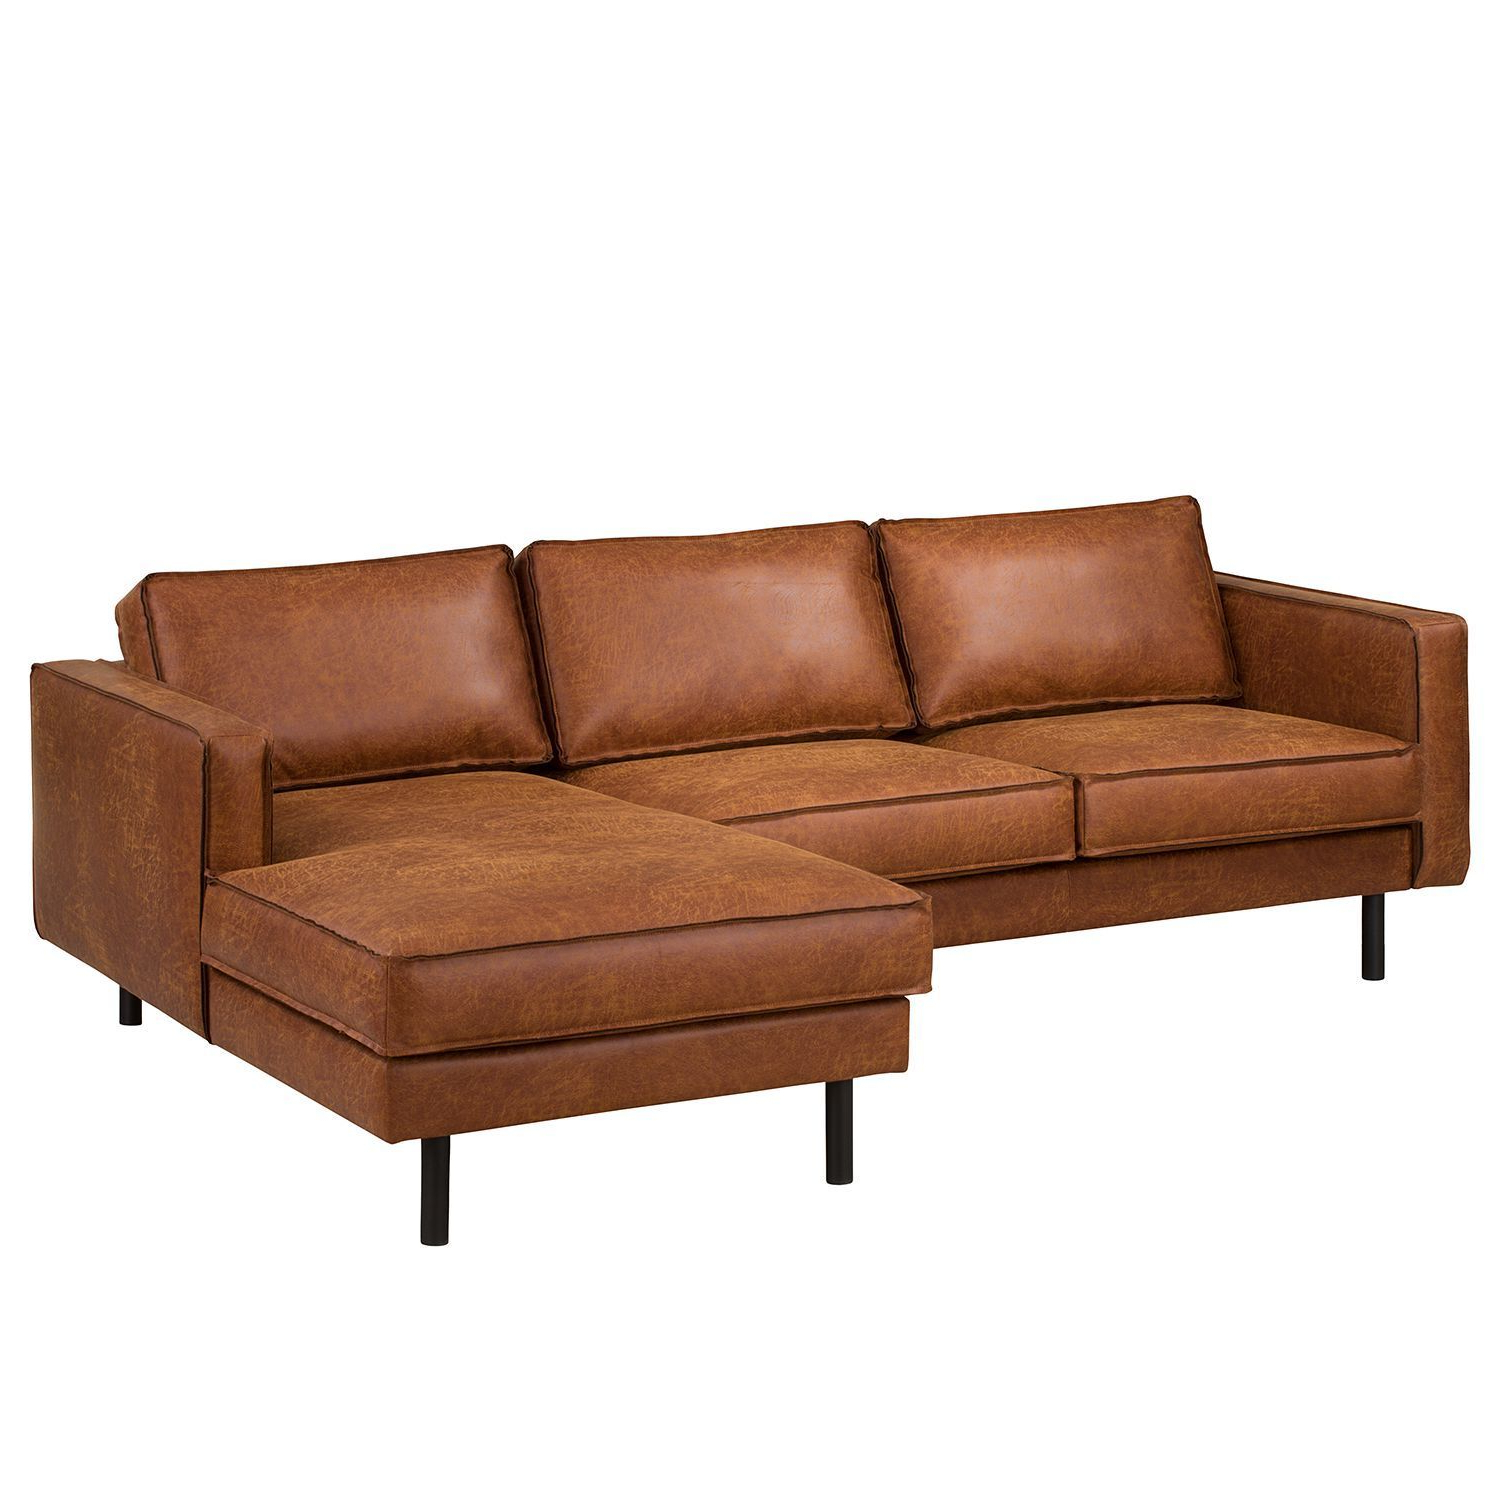 2018 Florence Mid Century Modern Right Sectional Sofas Cognac Tan Throughout Ecksofa Fort Dodge Antiklederlook (View 2 of 20)